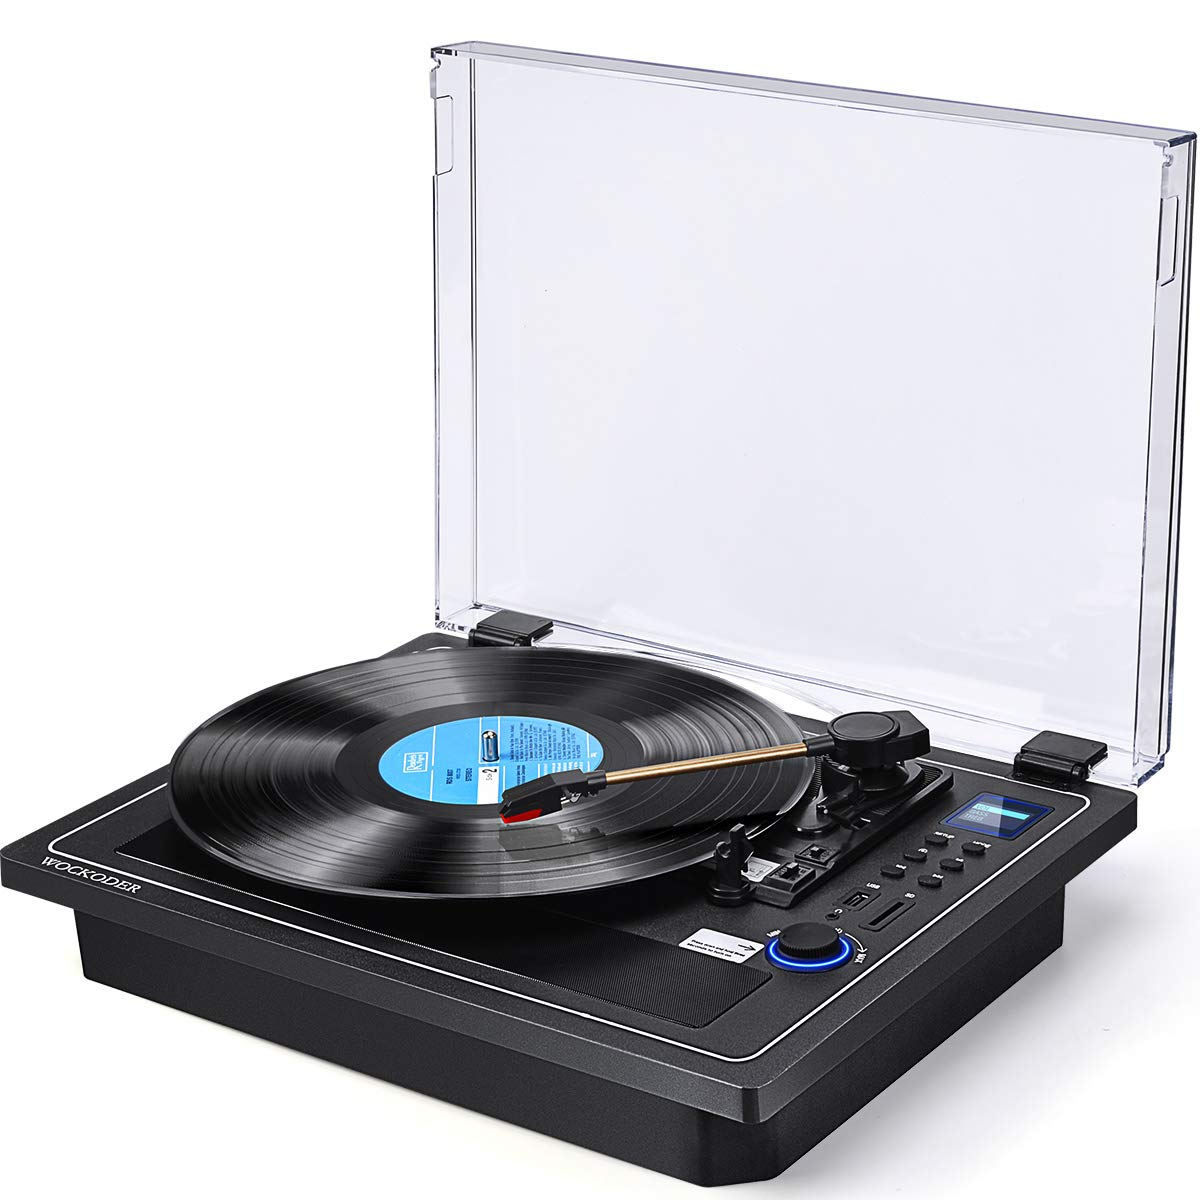 Record Player Turntale Bluetooth in & Out Record Player Built in Stereo Speakers Vinyl Records 3 Speed Turntable Player Support Vinyl-to-MP3 Recording USB SD Player (Multifunctional Record Player)